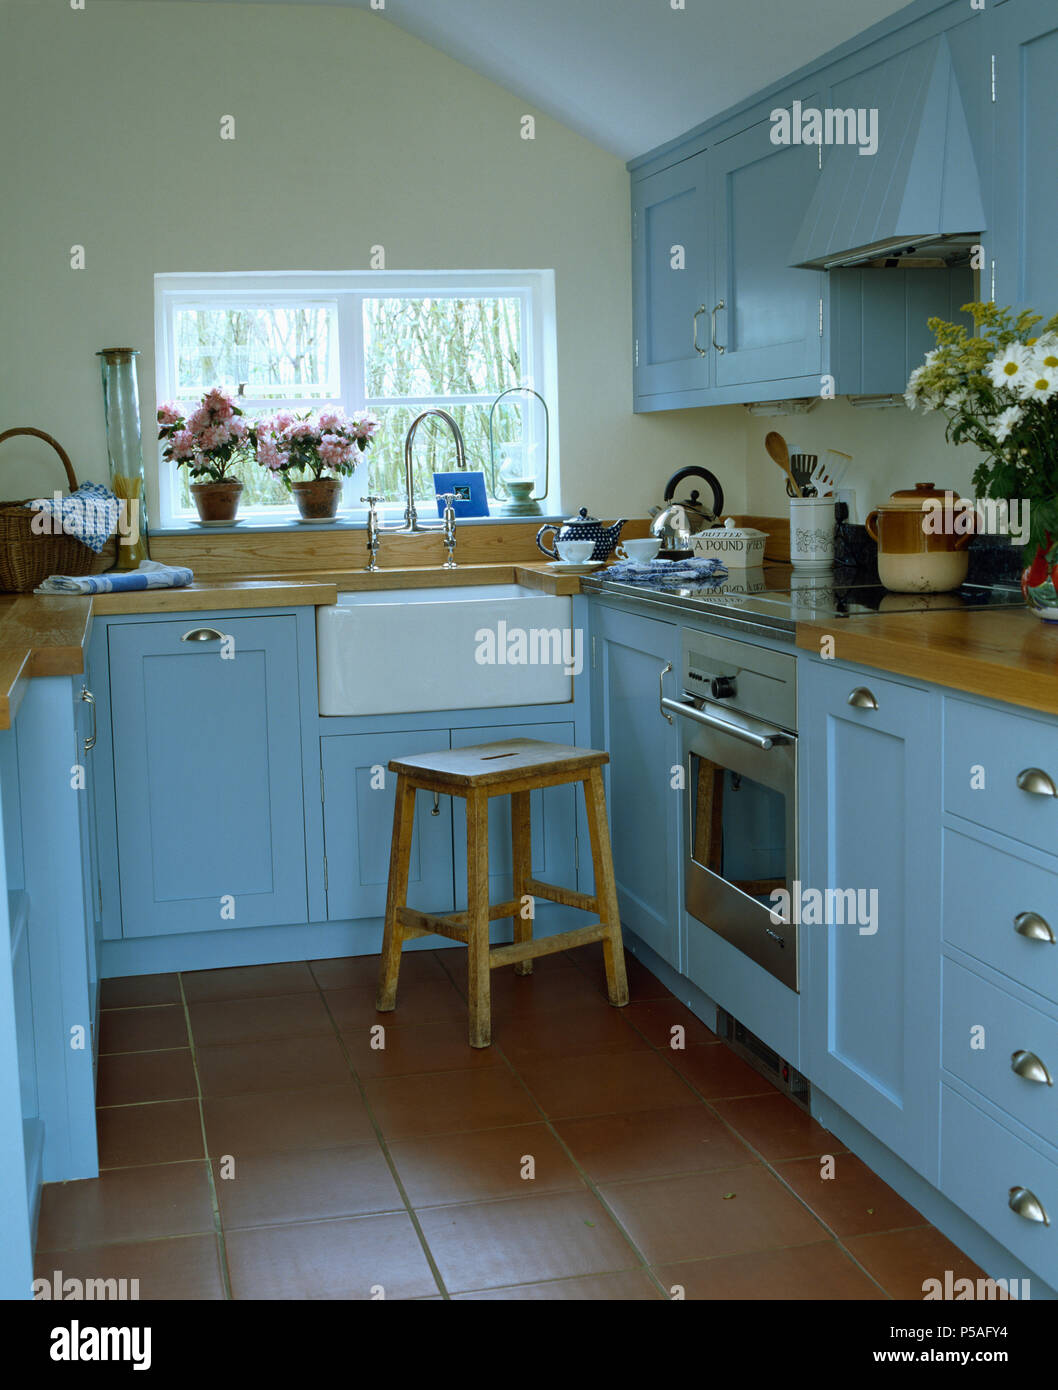 Small cottsage kitchen with pale blue units and quarry tiled floor ...